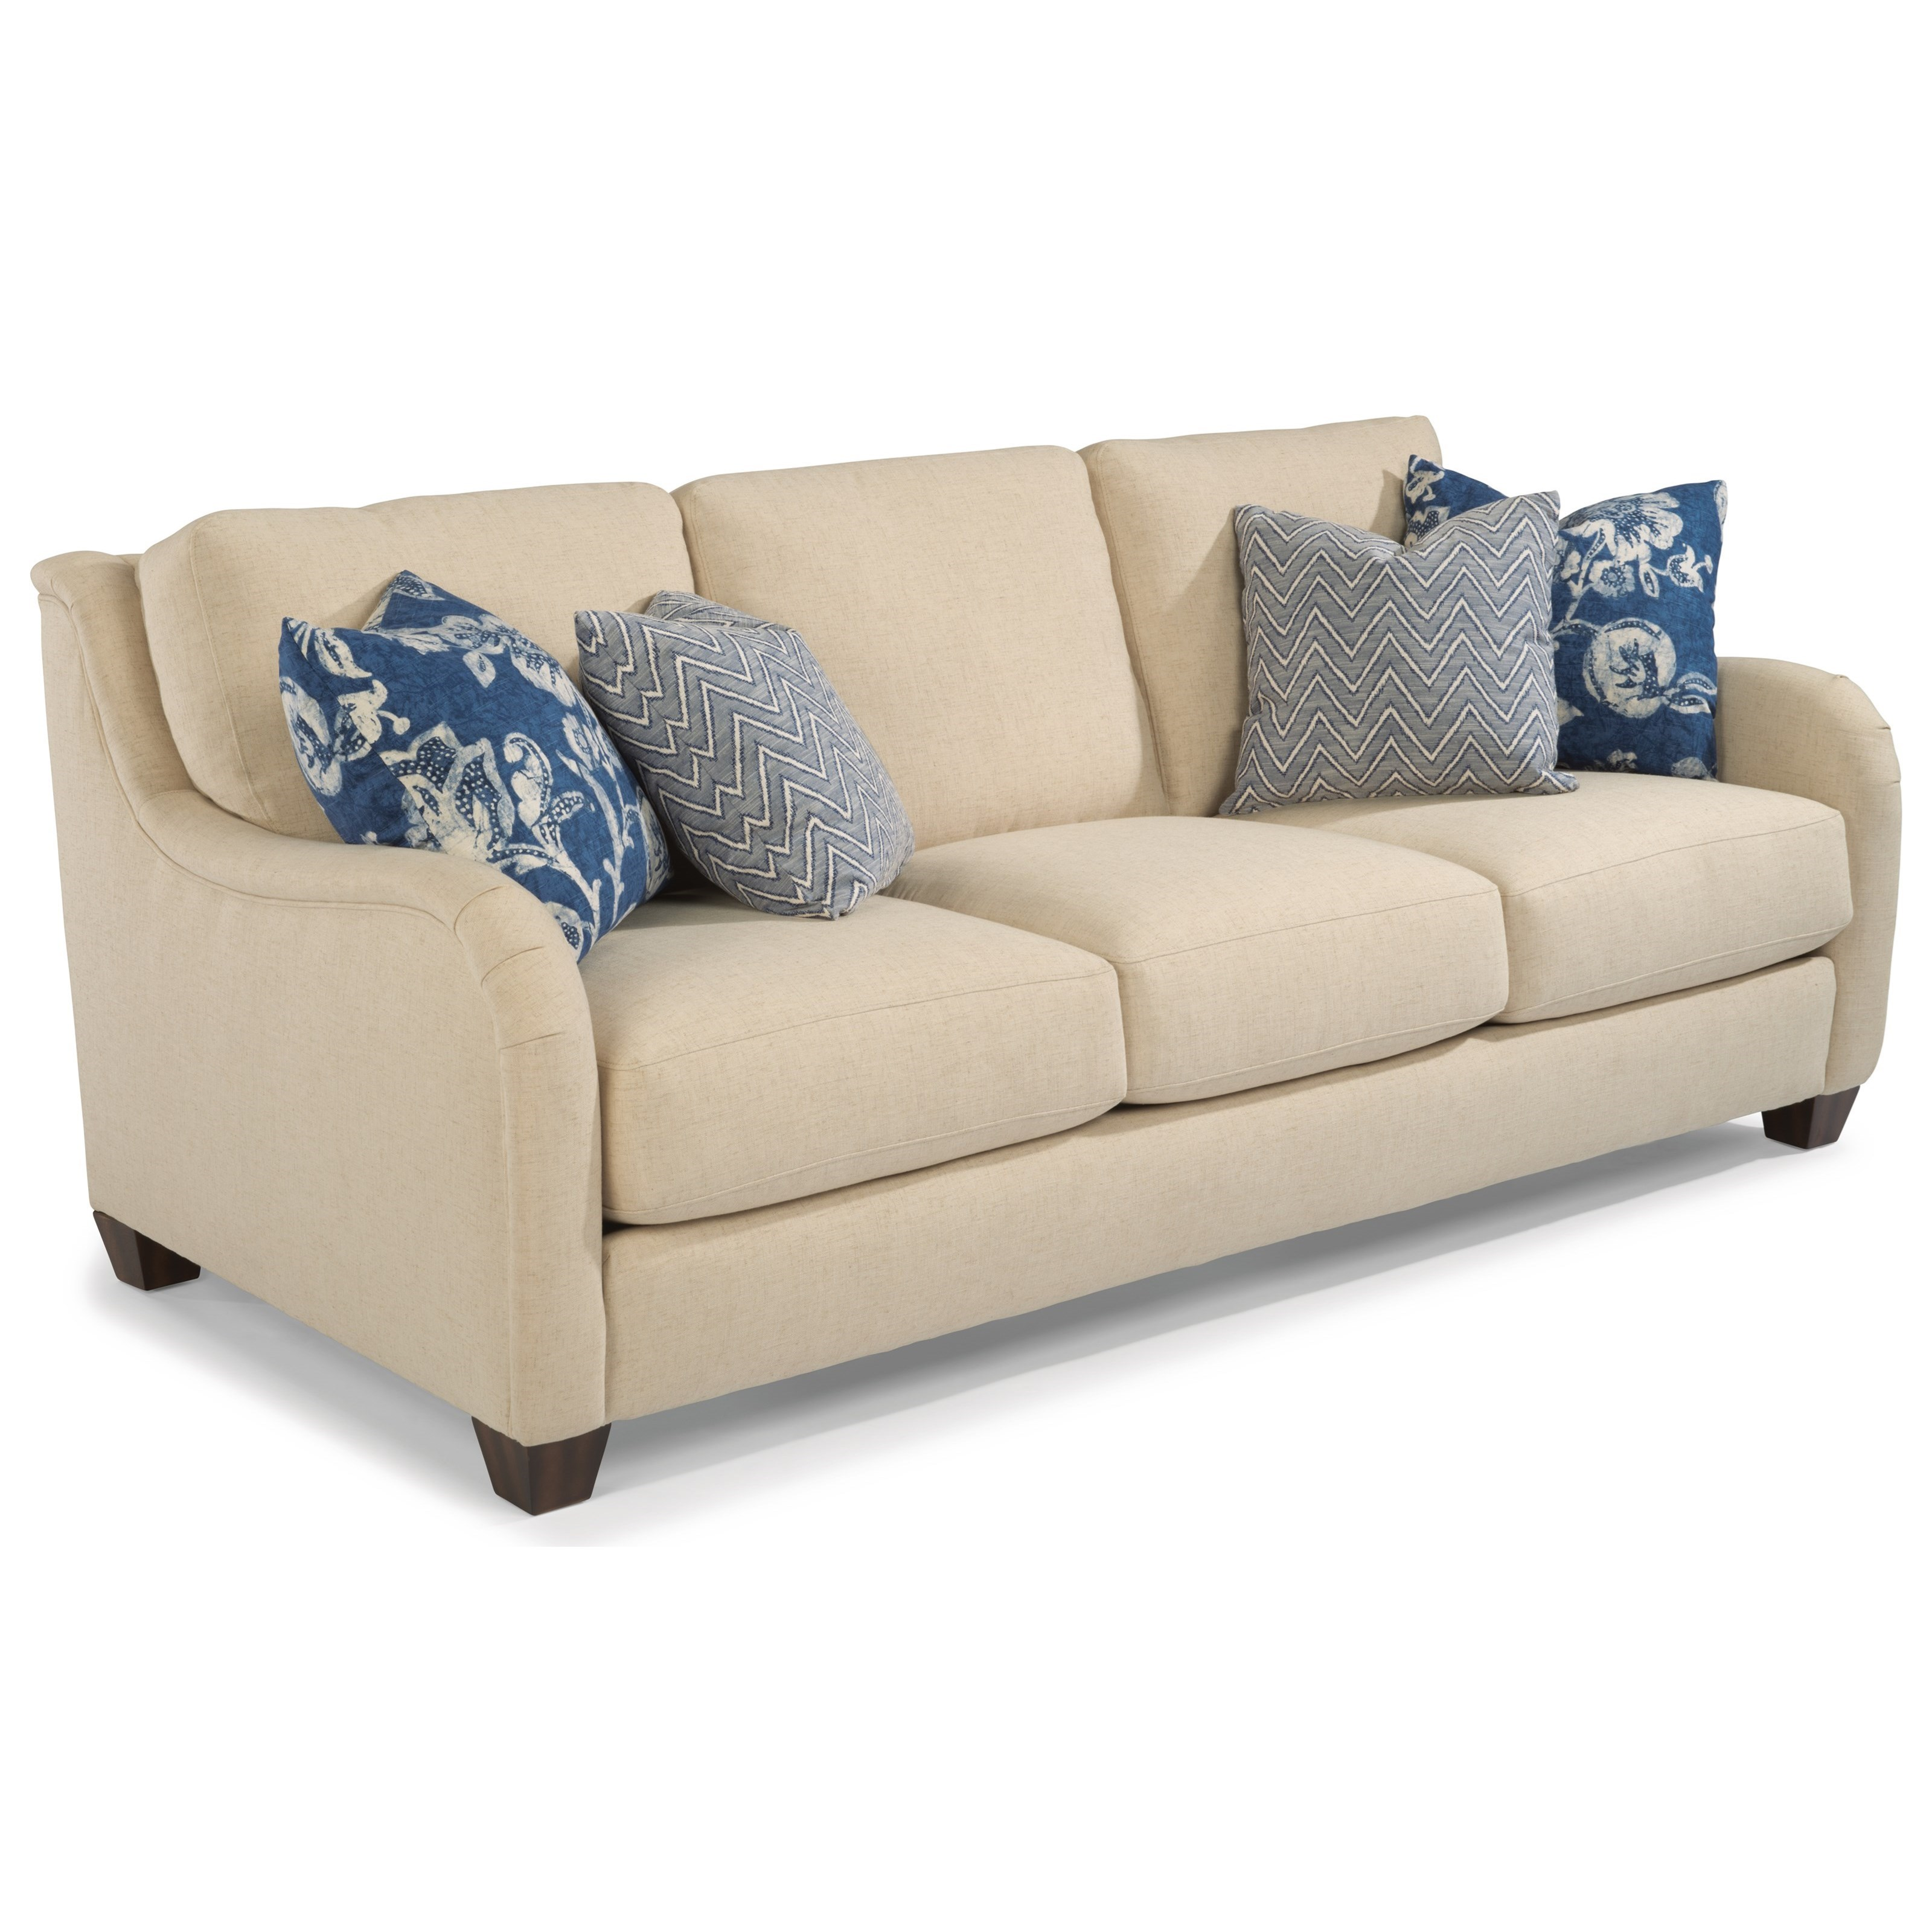 Flexsteel Fortuna Sofa - Item Number: 7908-31-138-11